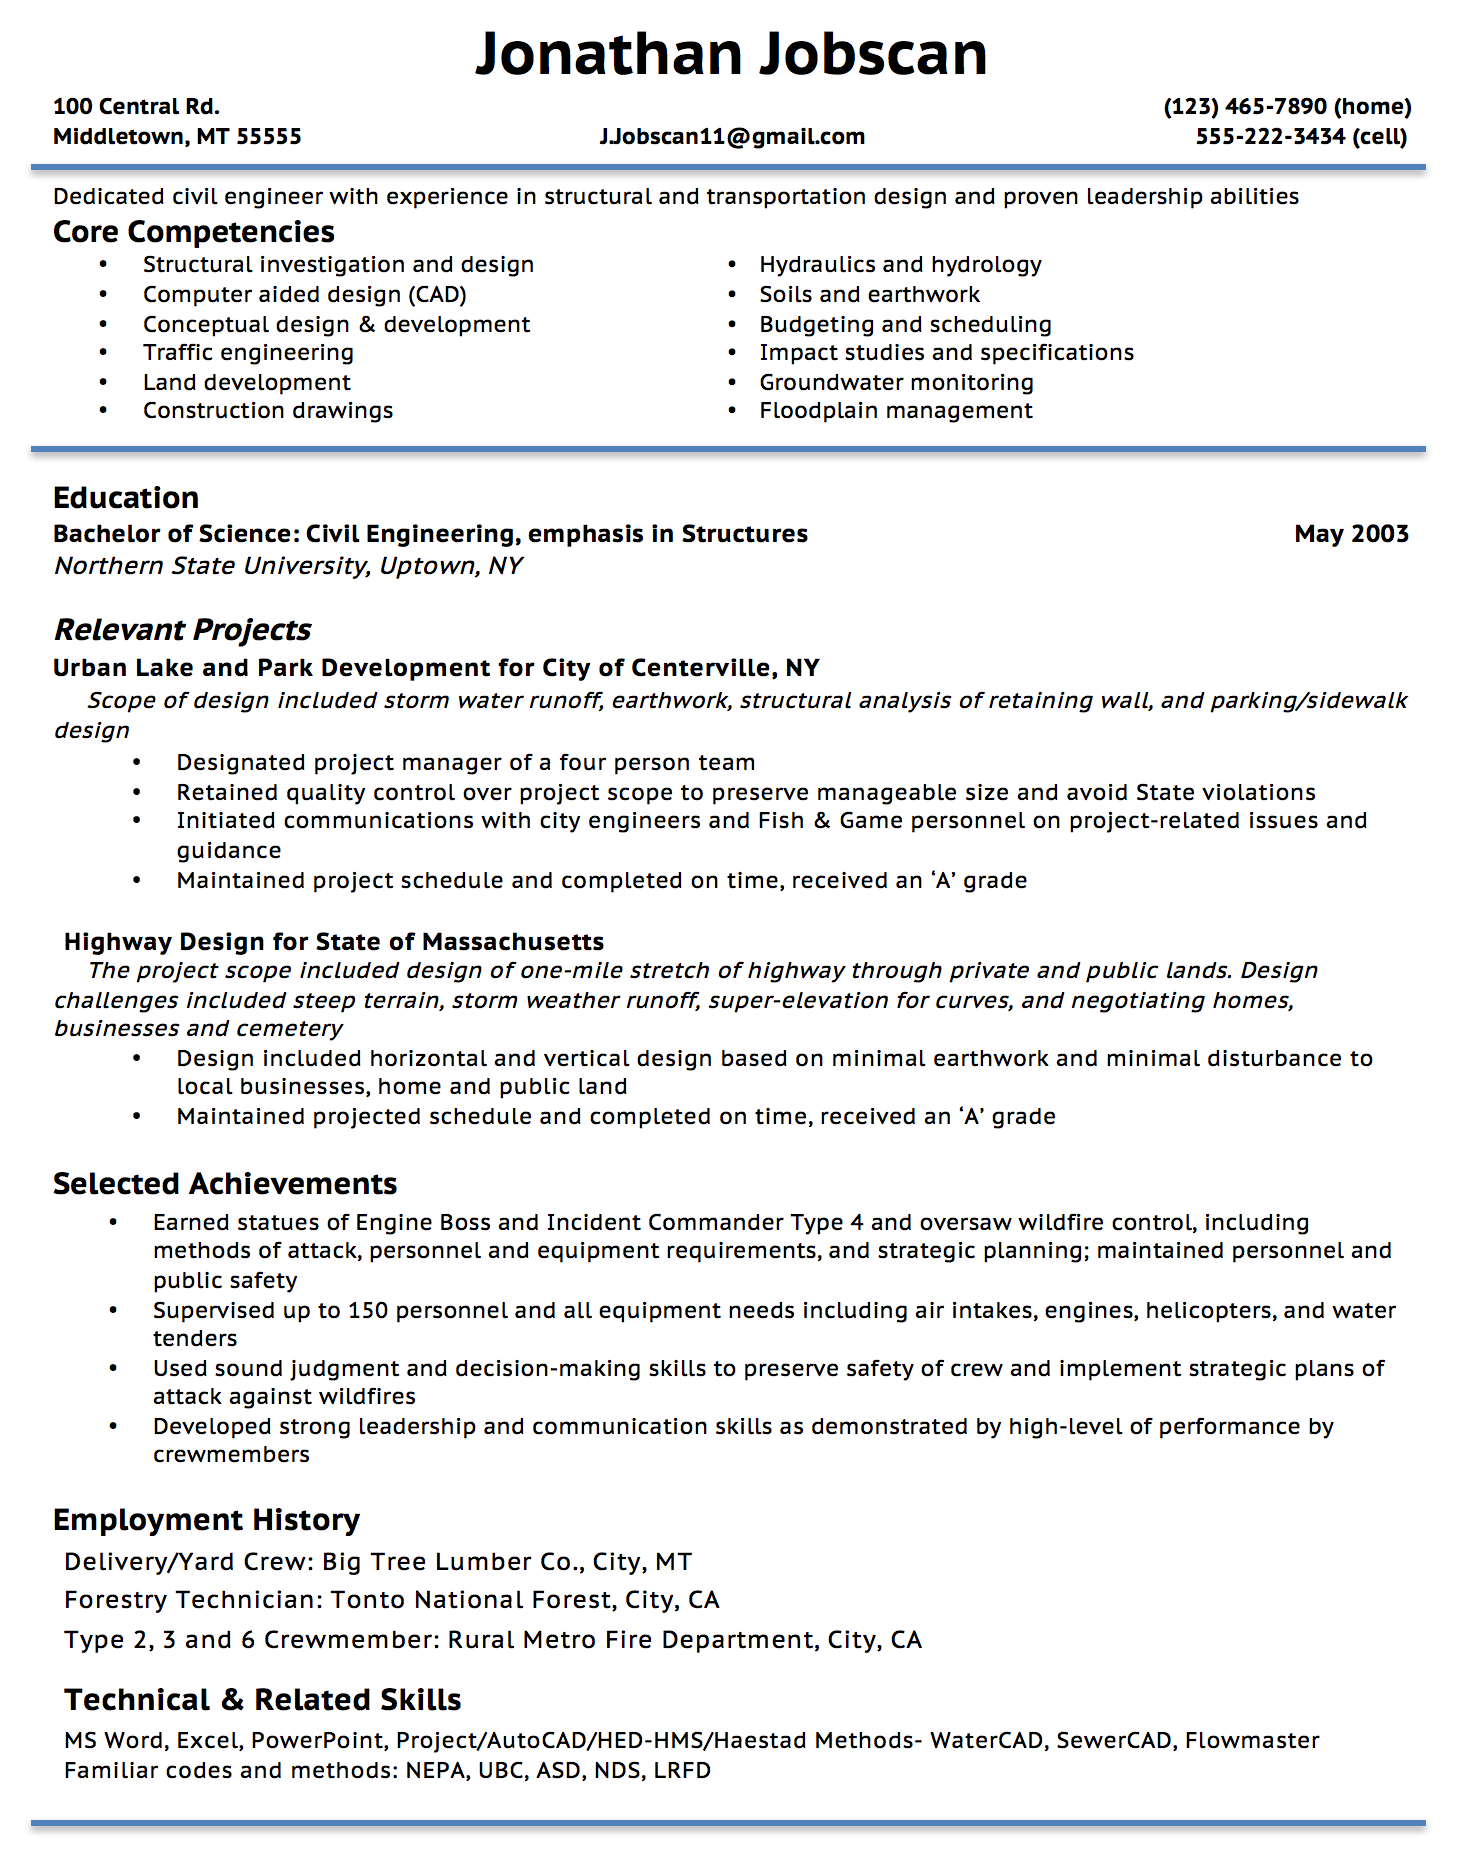 Opposenewapstandardsus  Picturesque Resume Writing Guide  Jobscan With Inspiring Example Of A Functional Resume Format With Adorable Resume Website Examples Also How Many Pages For A Resume In Addition Executive Resume Templates And Follow Up Letter After Sending Resume As Well As Resume Tips And Tricks Additionally Engineering Resume Sample From Jobscanco With Opposenewapstandardsus  Inspiring Resume Writing Guide  Jobscan With Adorable Example Of A Functional Resume Format And Picturesque Resume Website Examples Also How Many Pages For A Resume In Addition Executive Resume Templates From Jobscanco